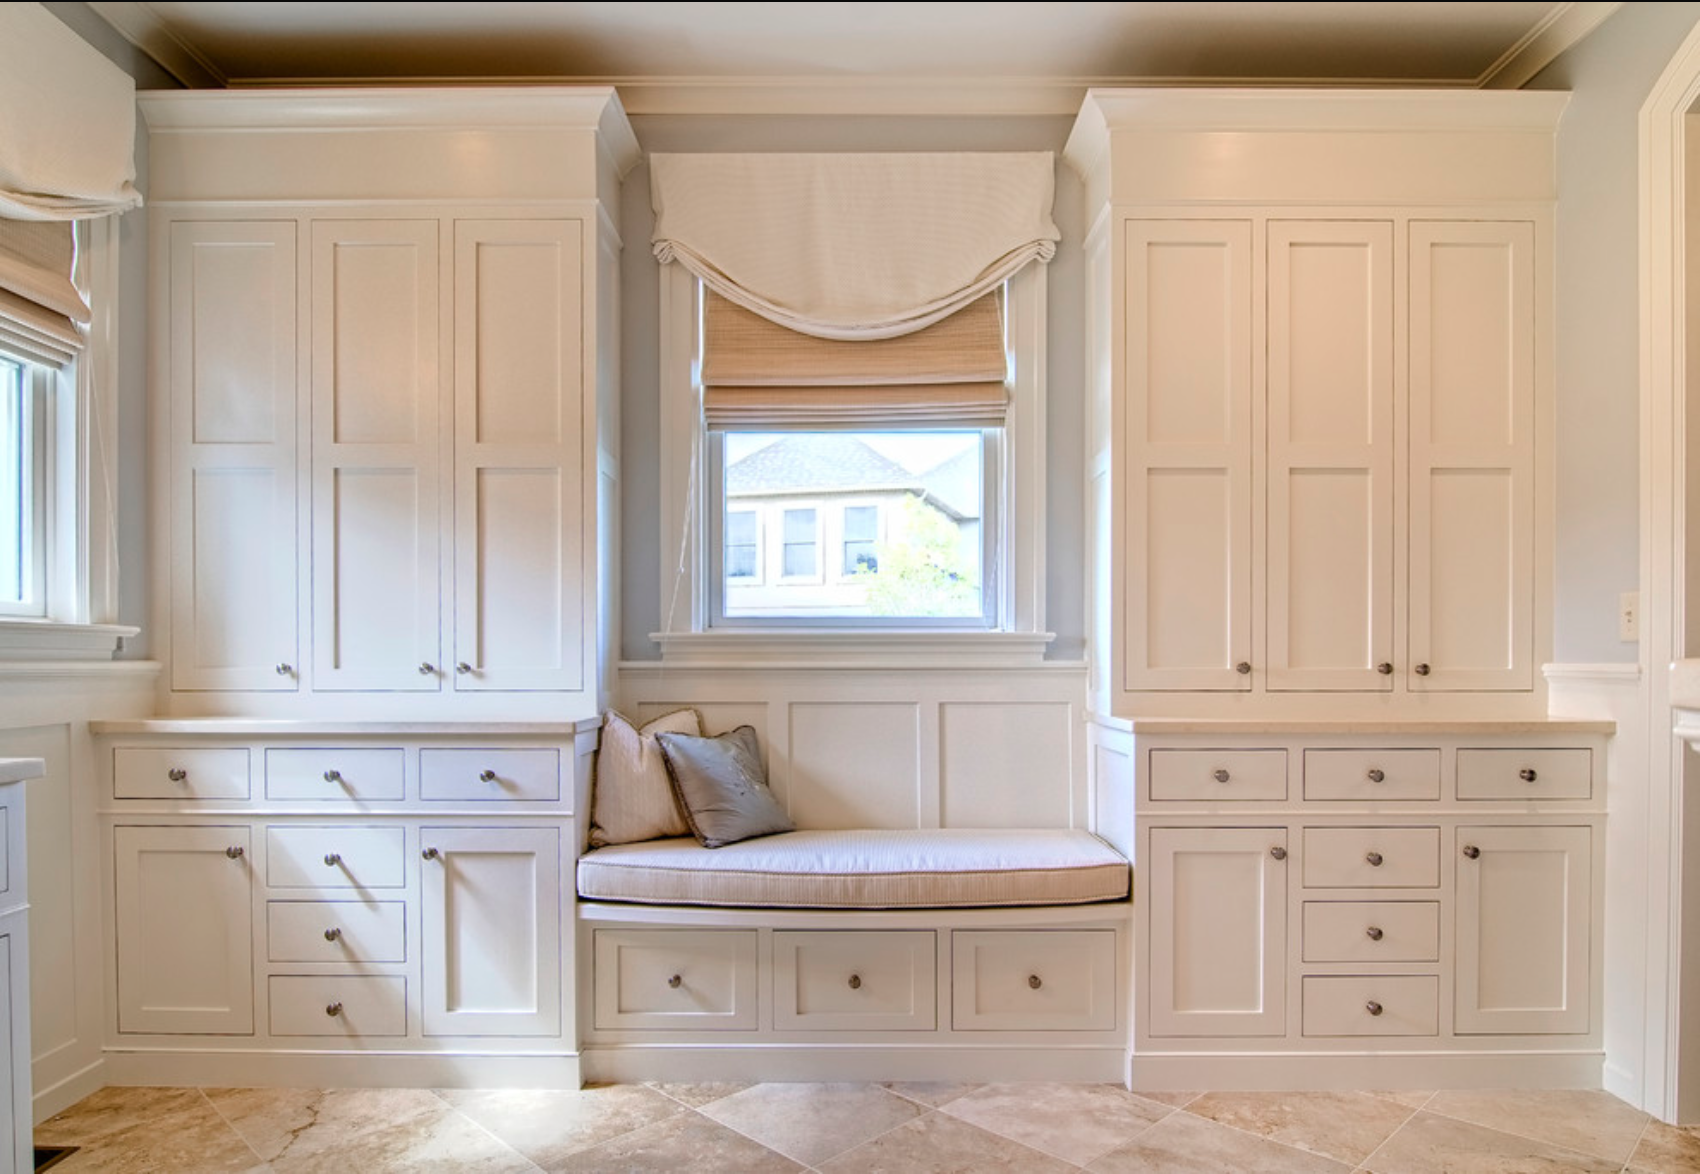 built-in custom closet system with a window seat | Home ...